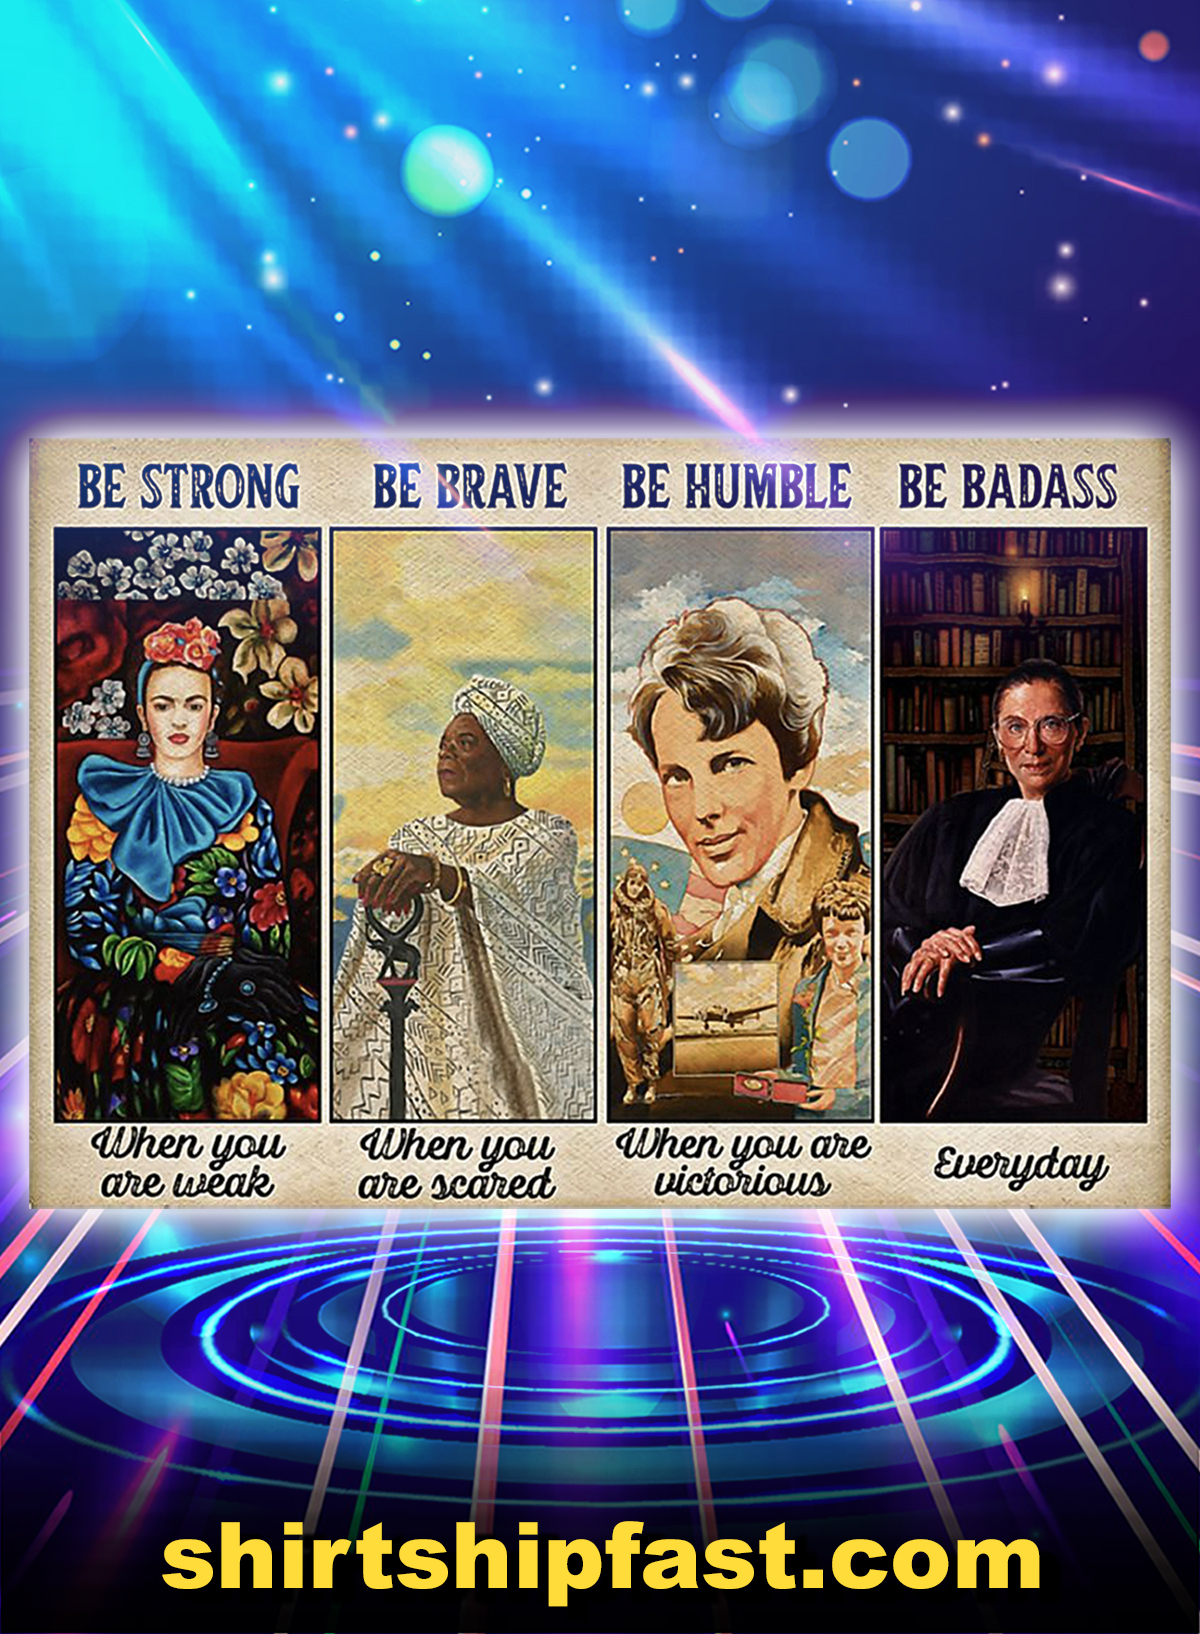 Feminist Frida Kahlo RBG be strong be brave be humble be badass poster - A1